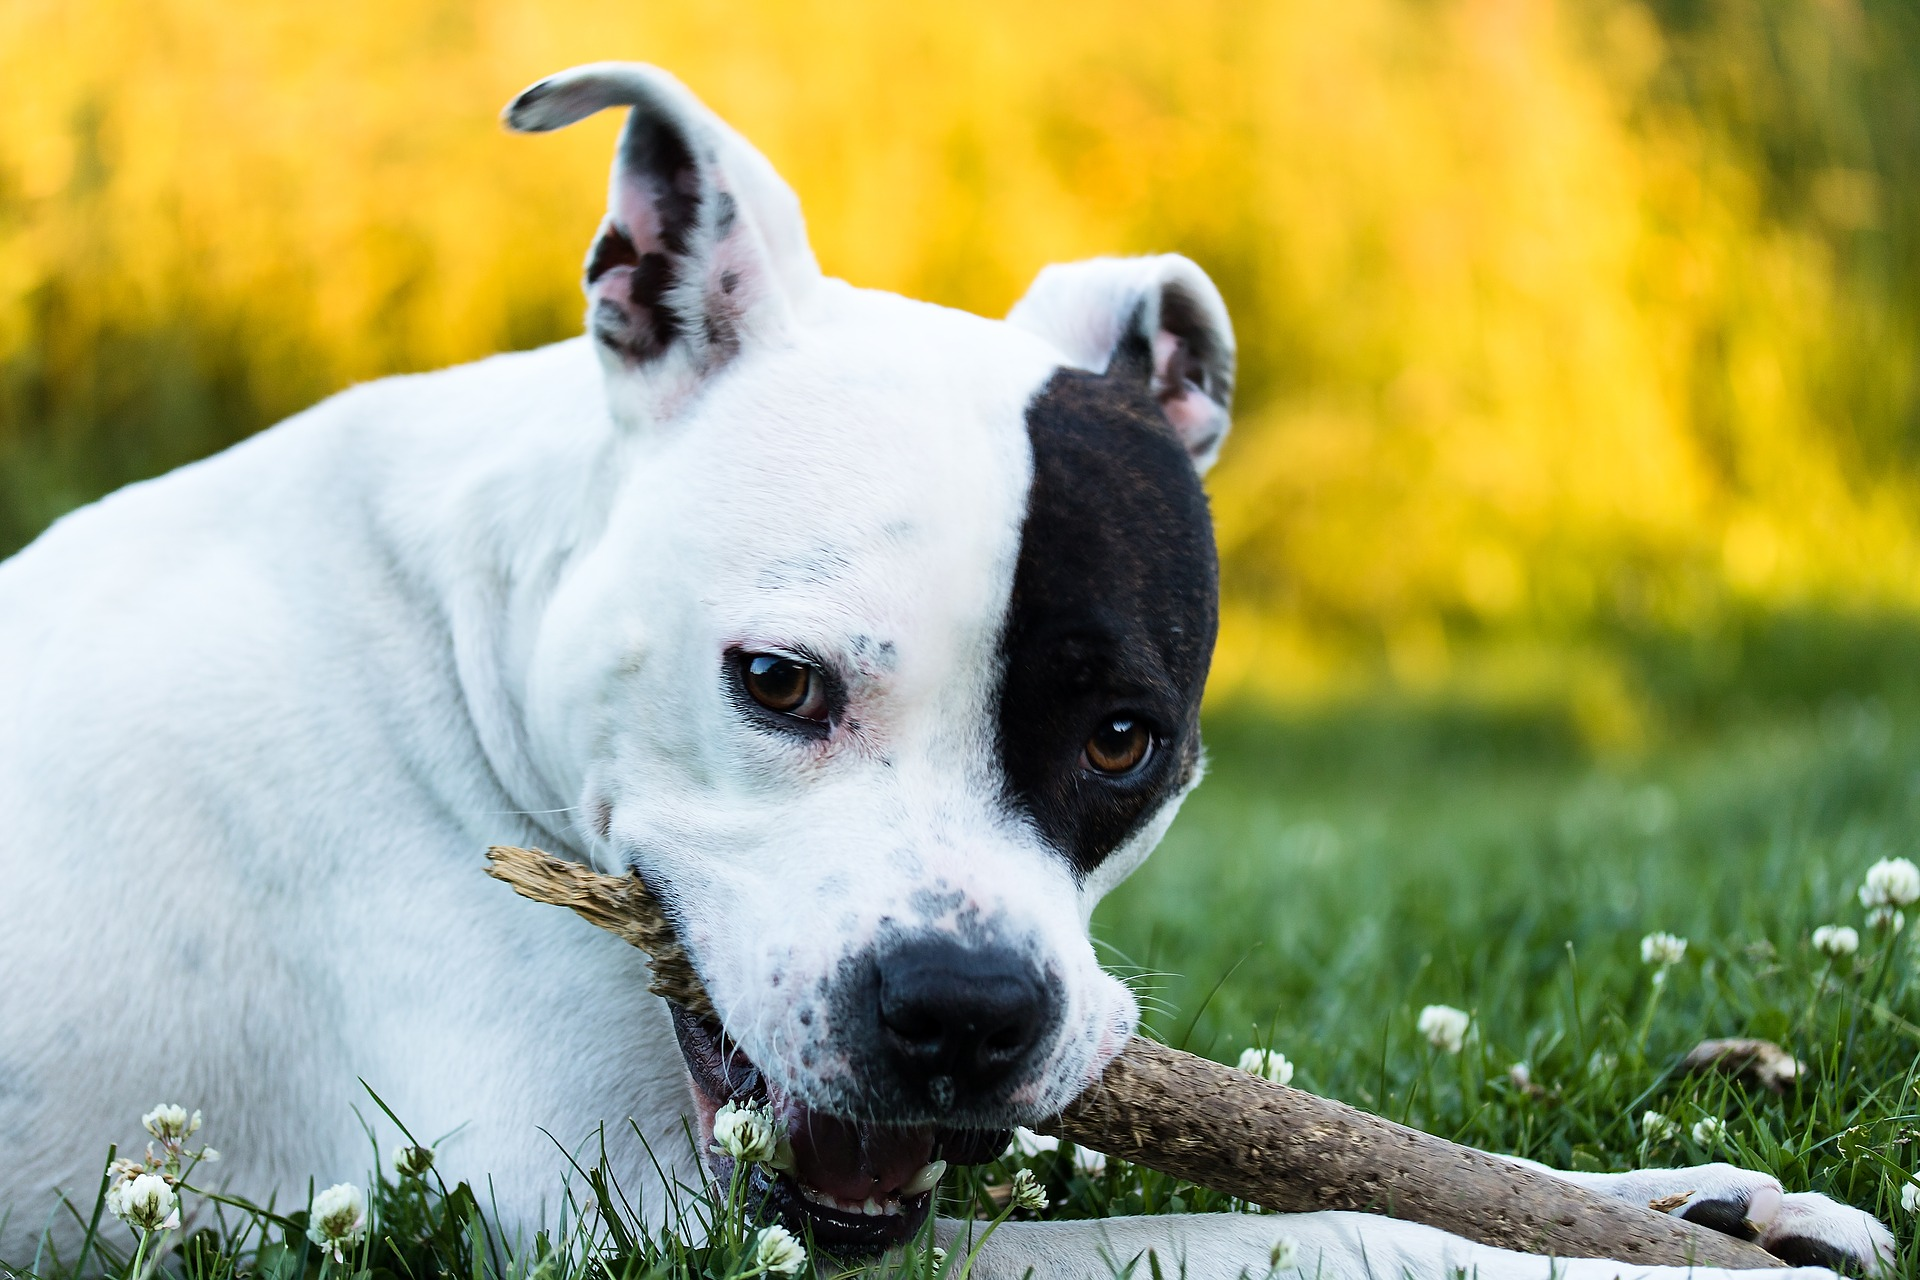 American Staffordshire Terrier: Dog Breed Information, Facts and Pictures